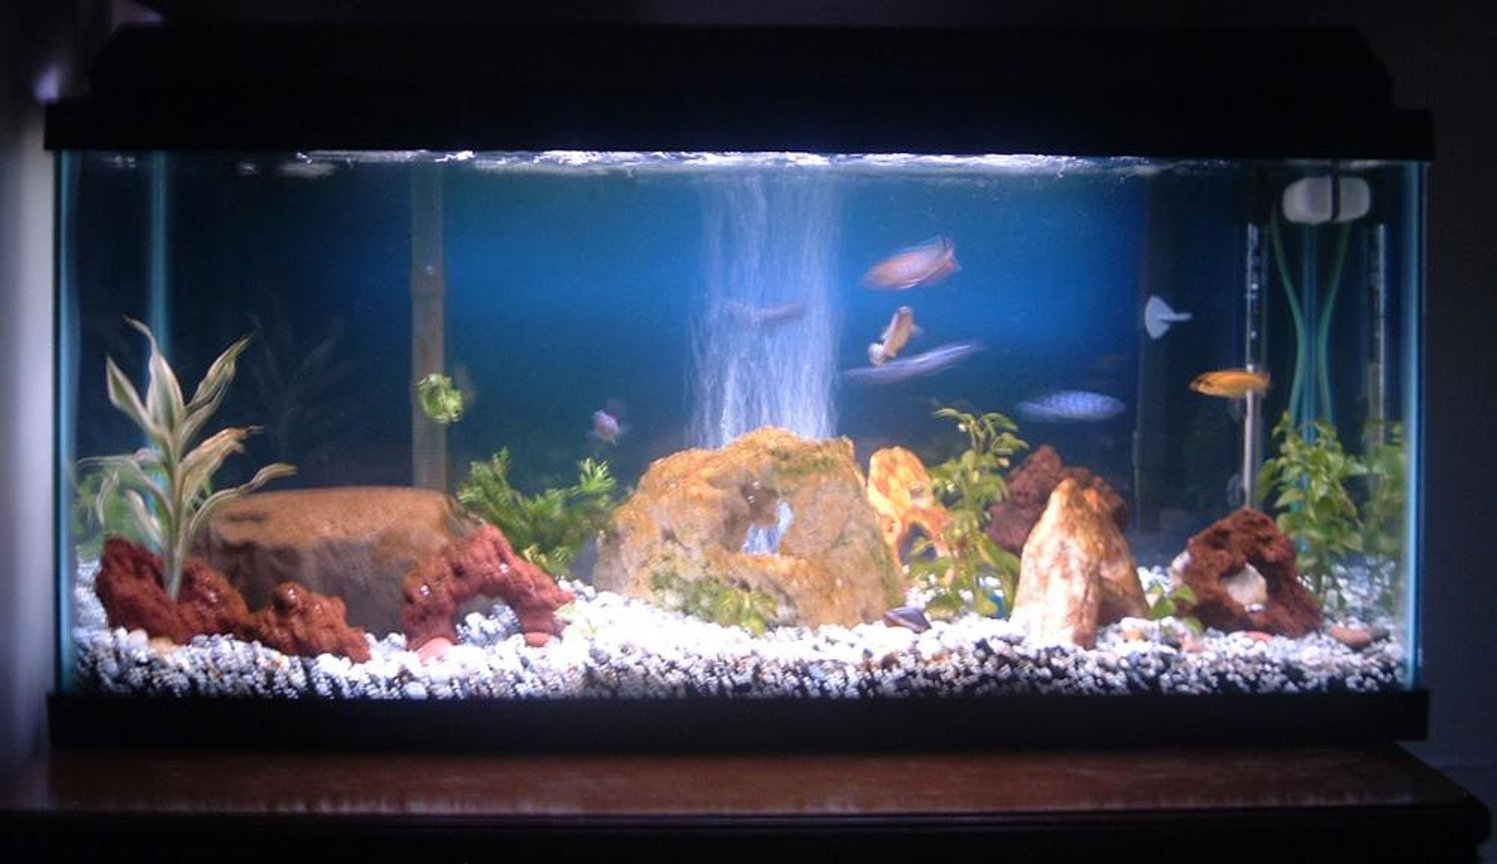 30 gallons freshwater fish tank (mostly fish and non-living decorations) - 30g Mbuna tank